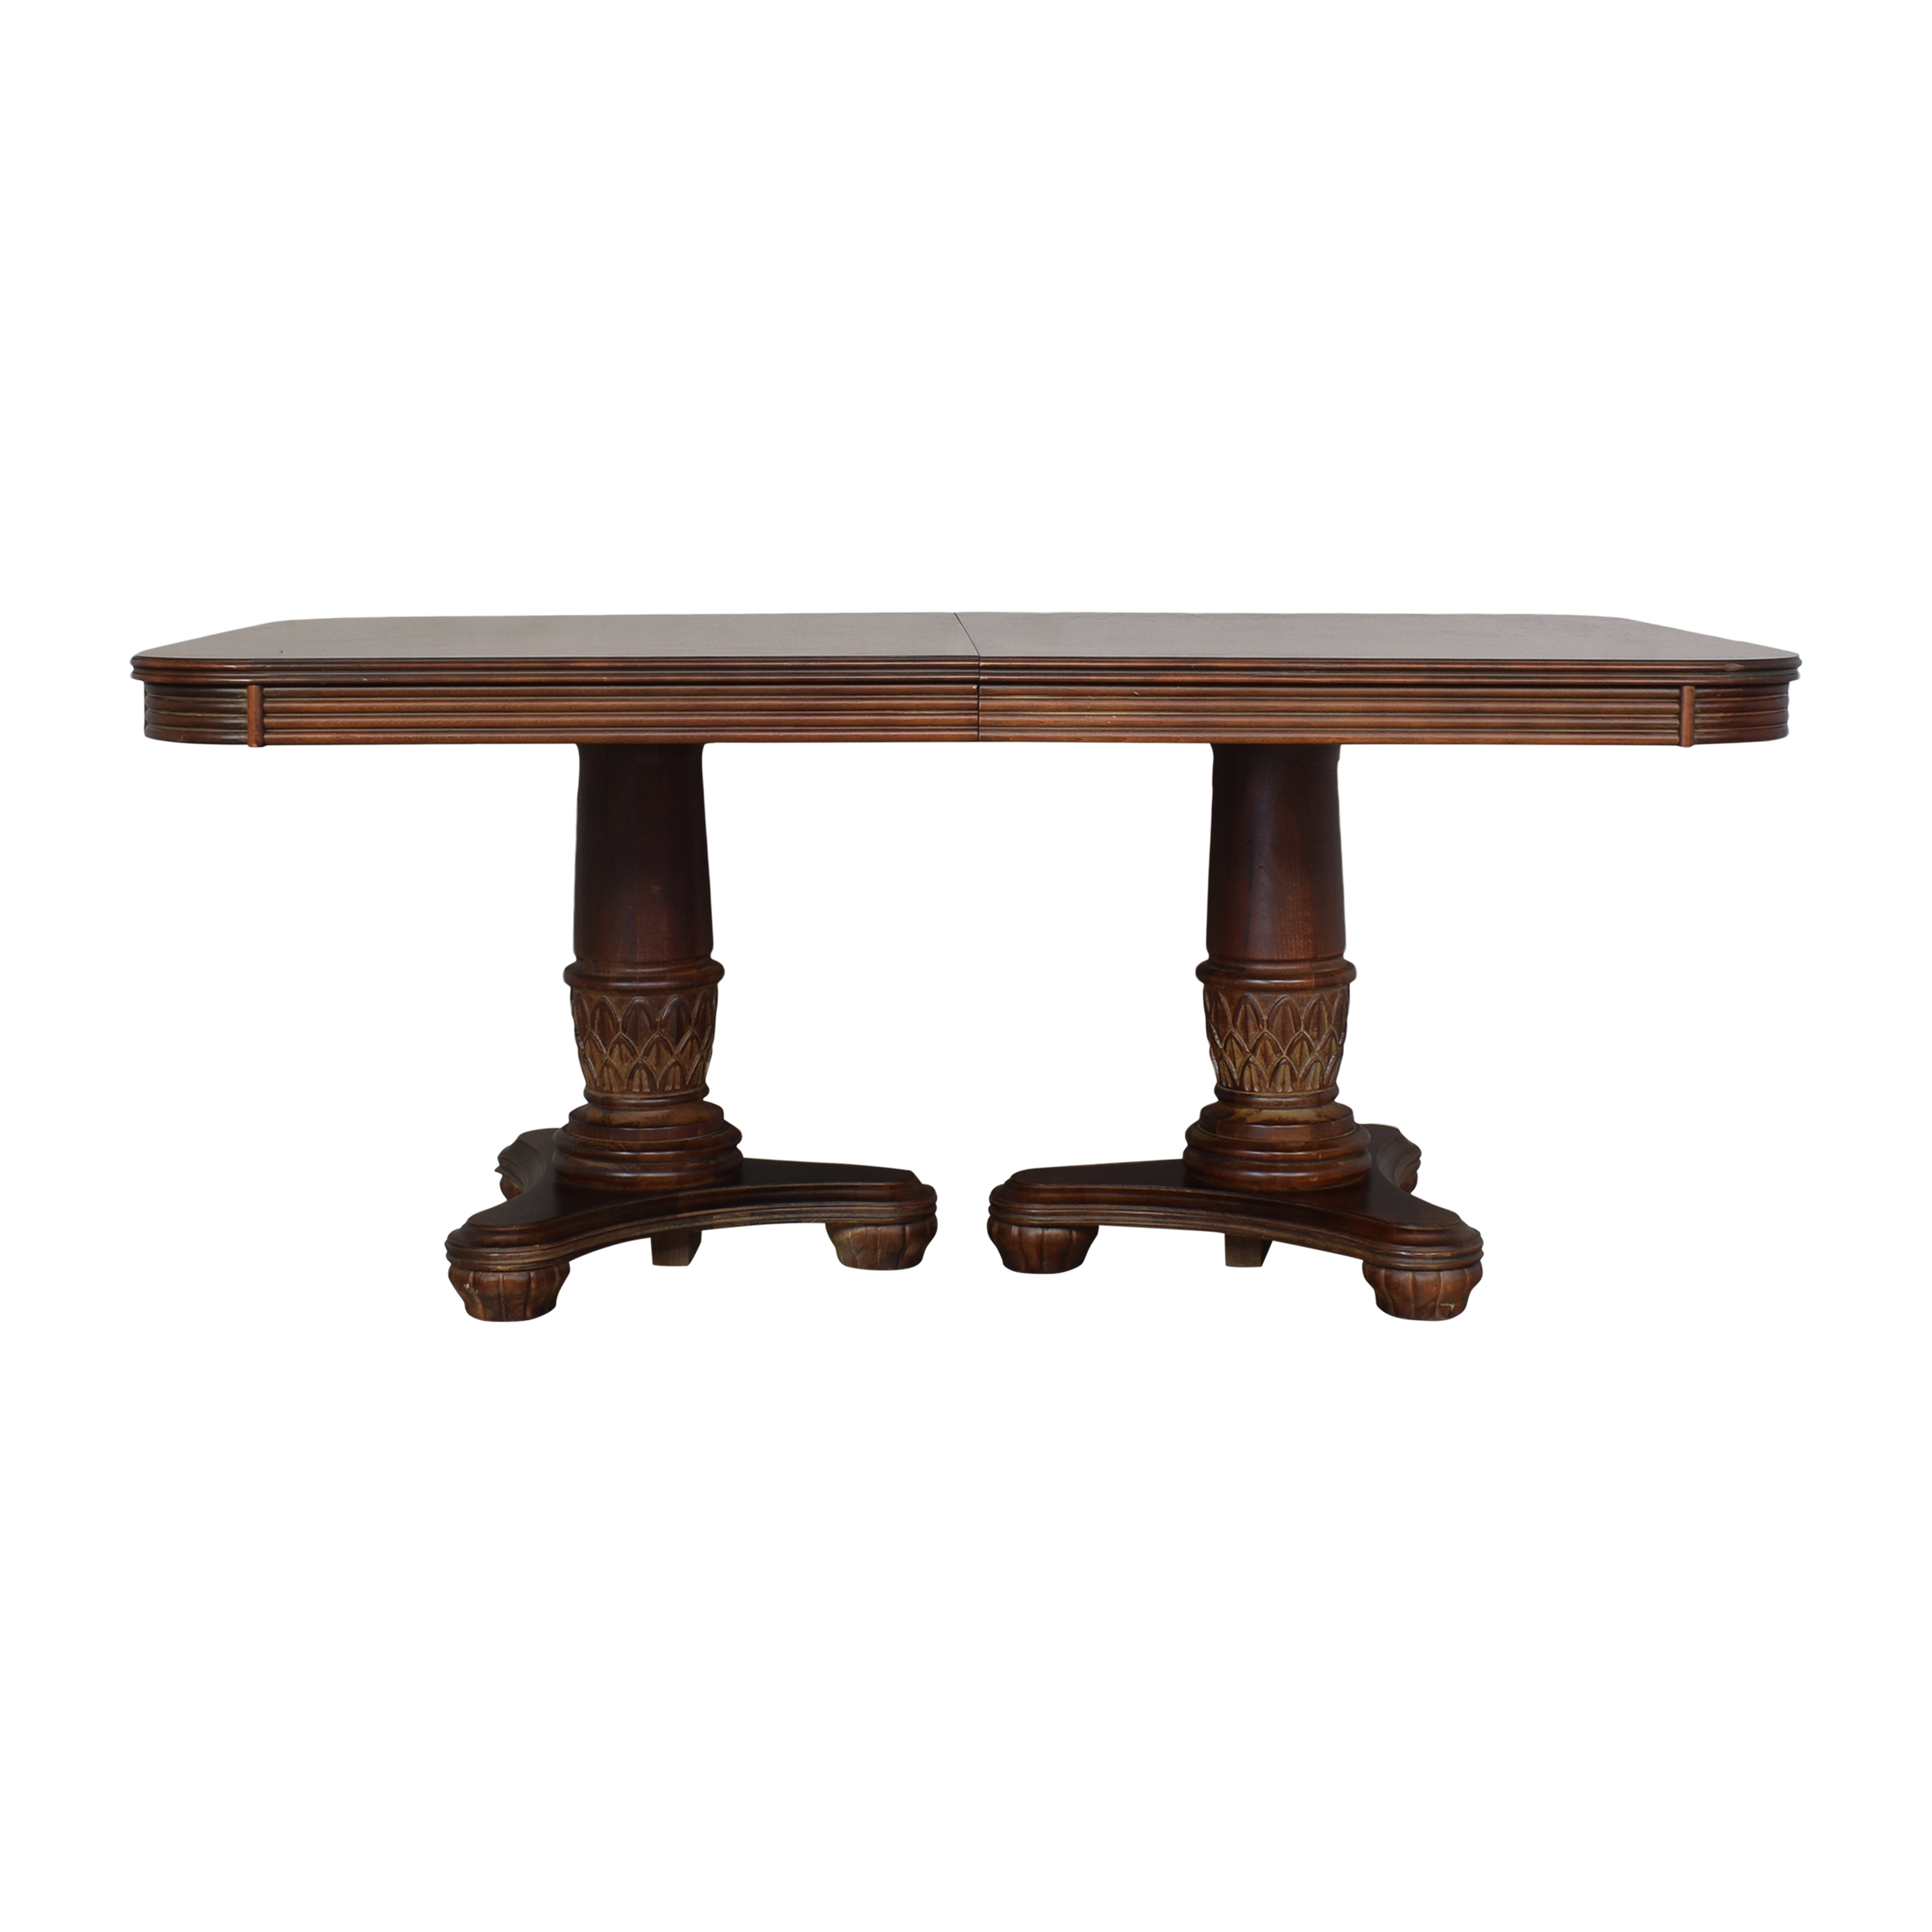 Broyhill Furniture Double Pedestal Extendable Dining Table sale